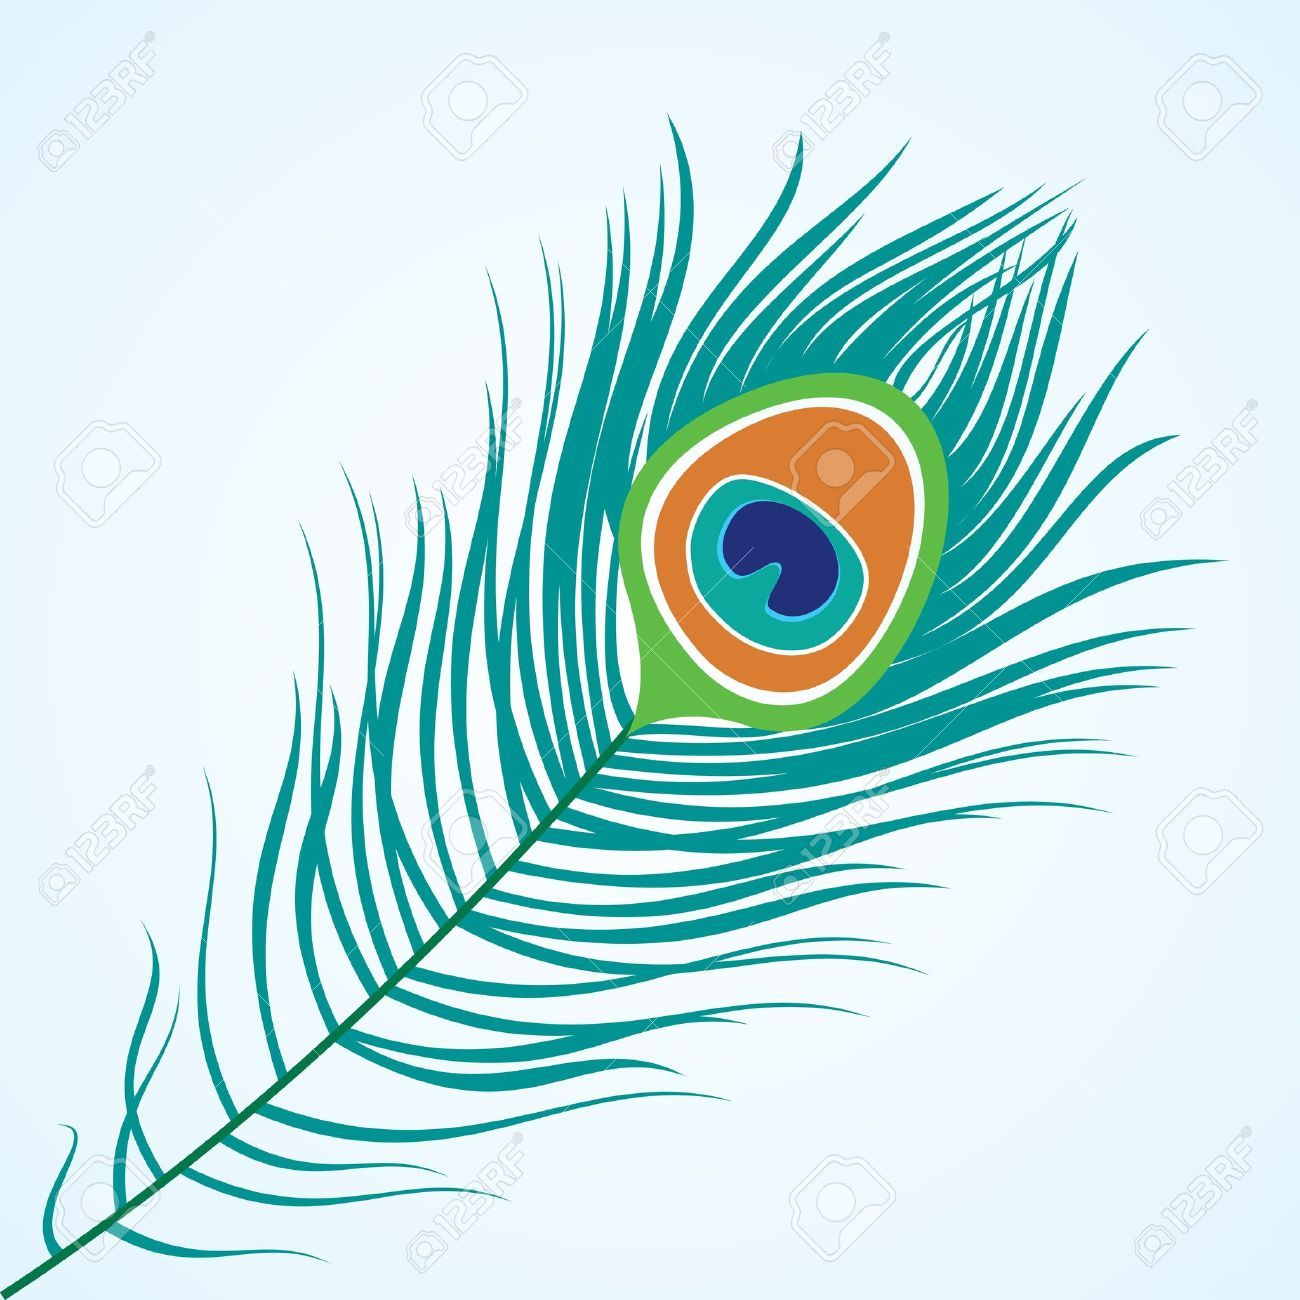 Feather clipart peacock. Stock illustrations cliparts and